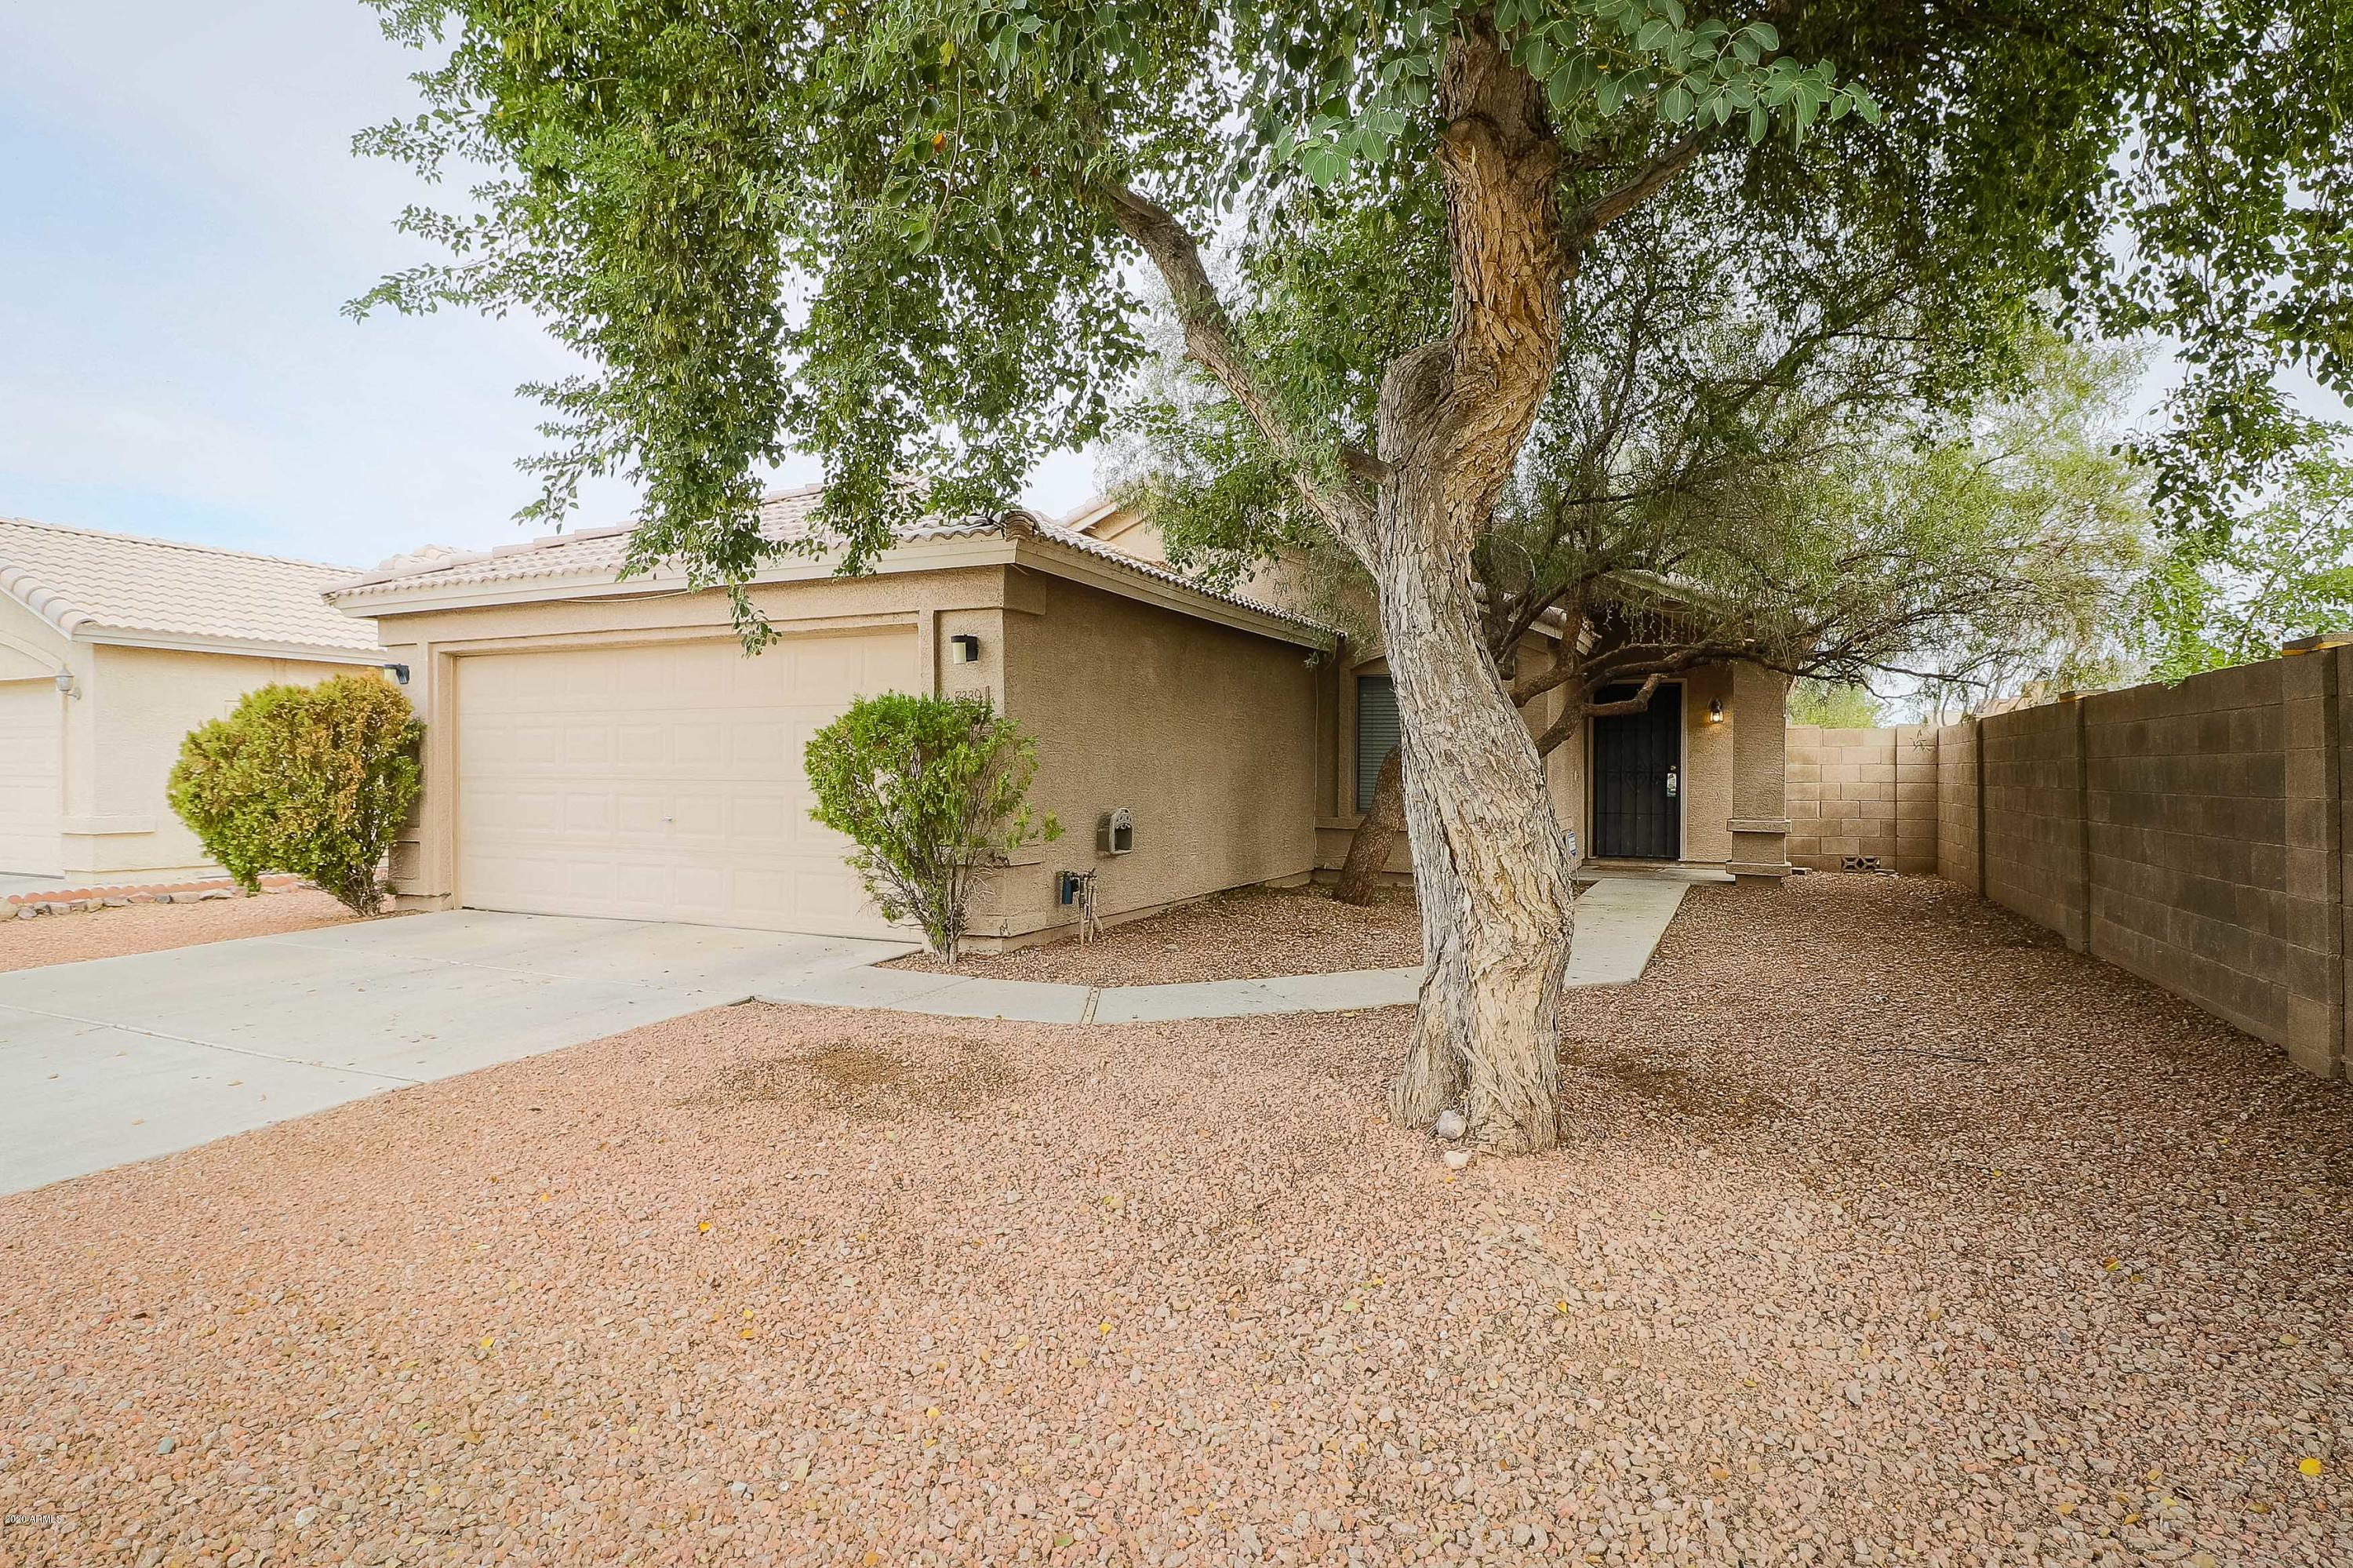 7339 N 70TH Avenue, Glendale AZ 85303